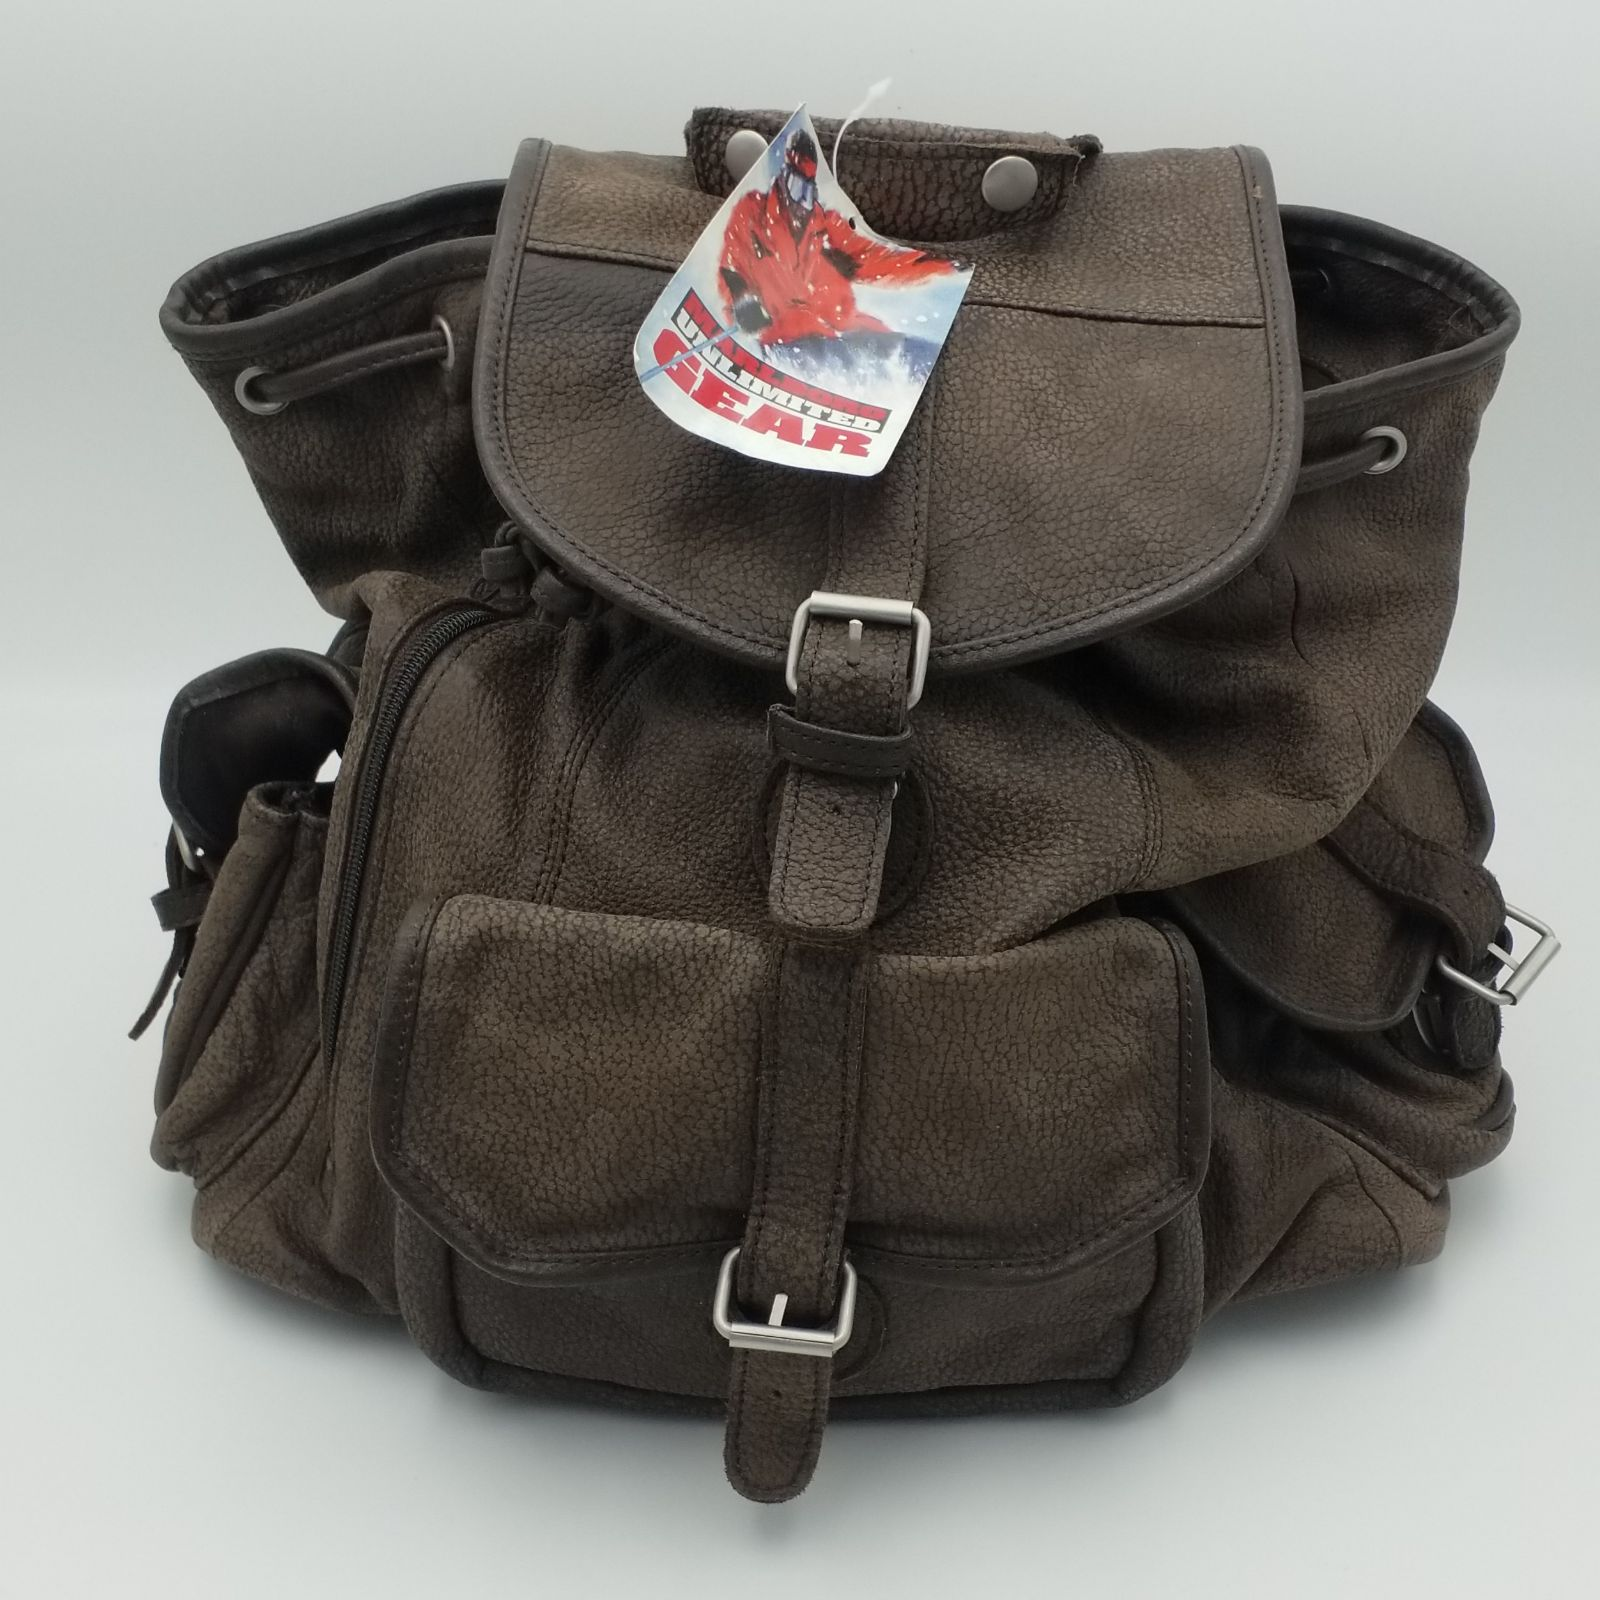 Leather Marlboro Unlimited Gear Backpack